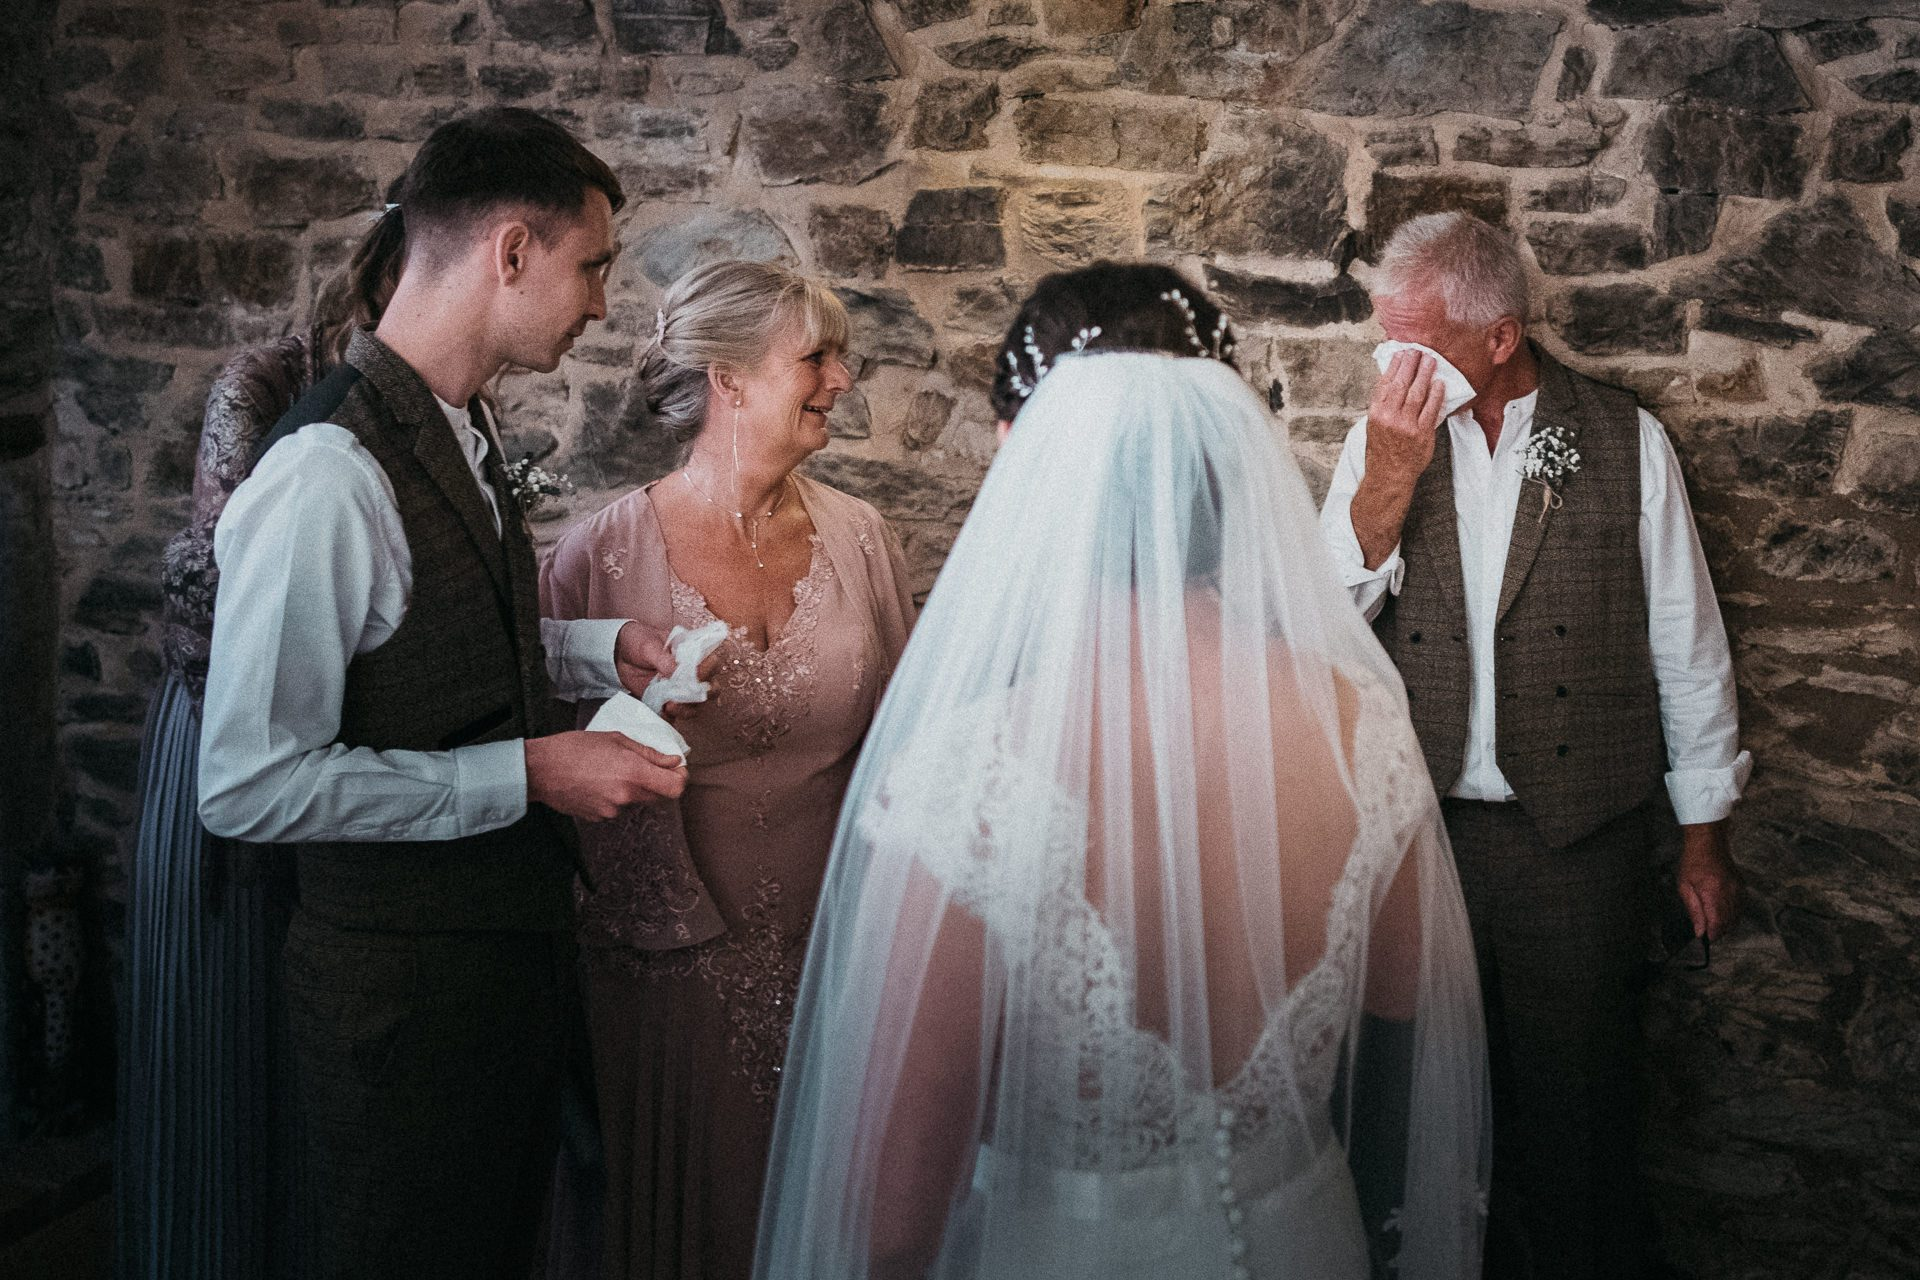 0061-DEVON-SOMERSET-WEDDING-PHOTOGRAPHER-0007-BEST-OF-2019-LOUISE-MAY-DEVON-SOMERSET-WEDDING-PHOTOGRAPHY-LM2_8478